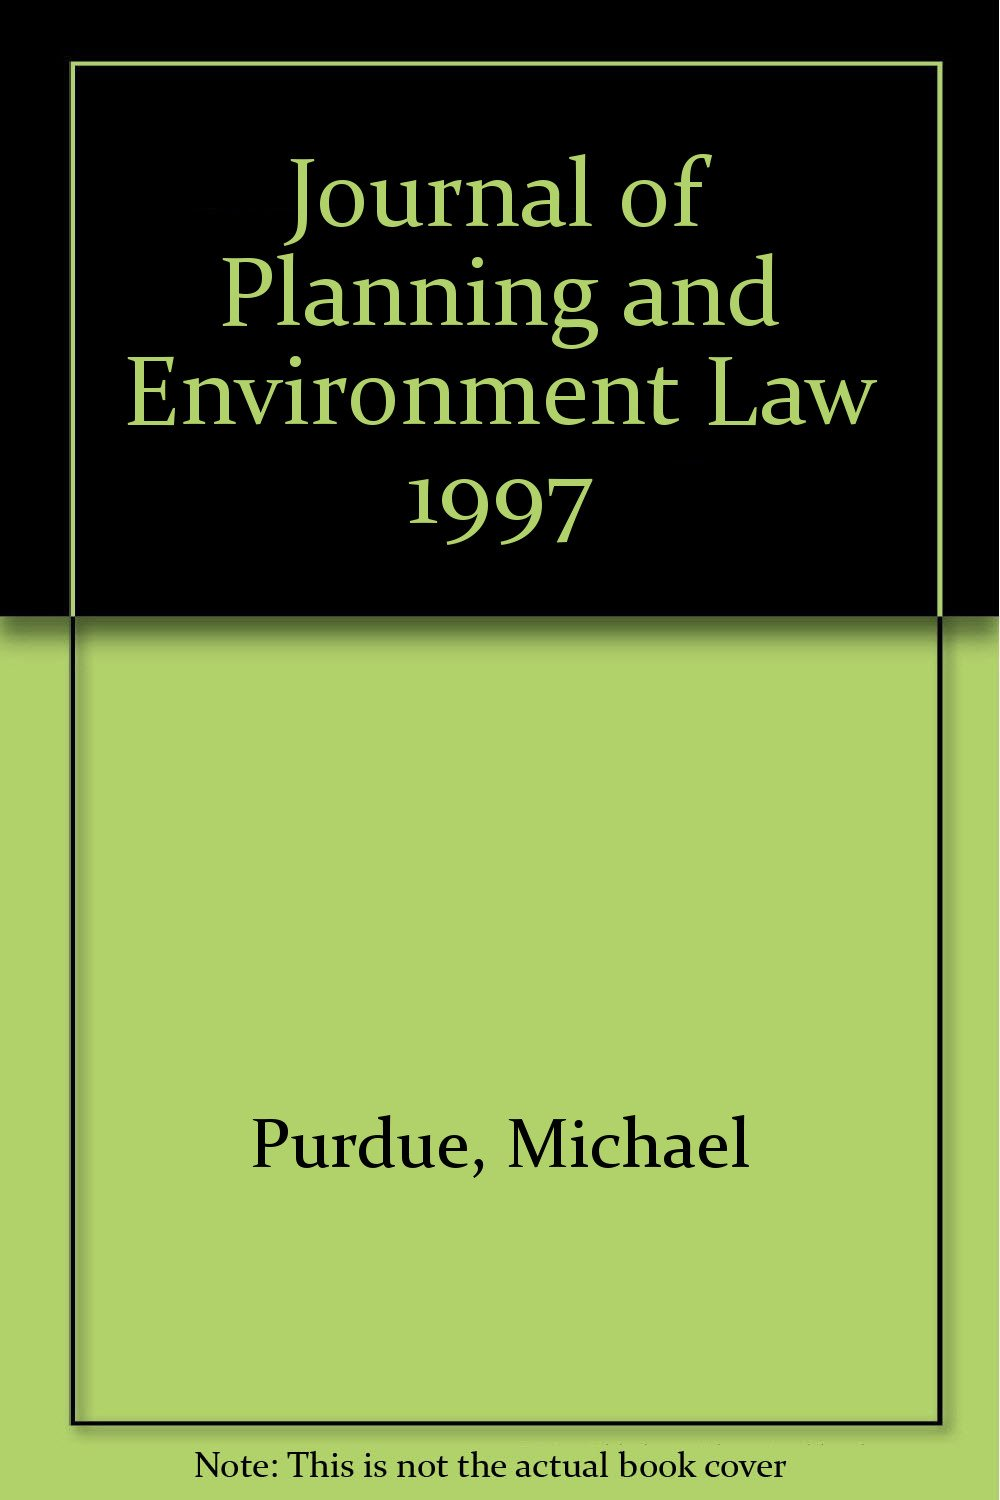 Journal of planning and environment law. Occasional papers